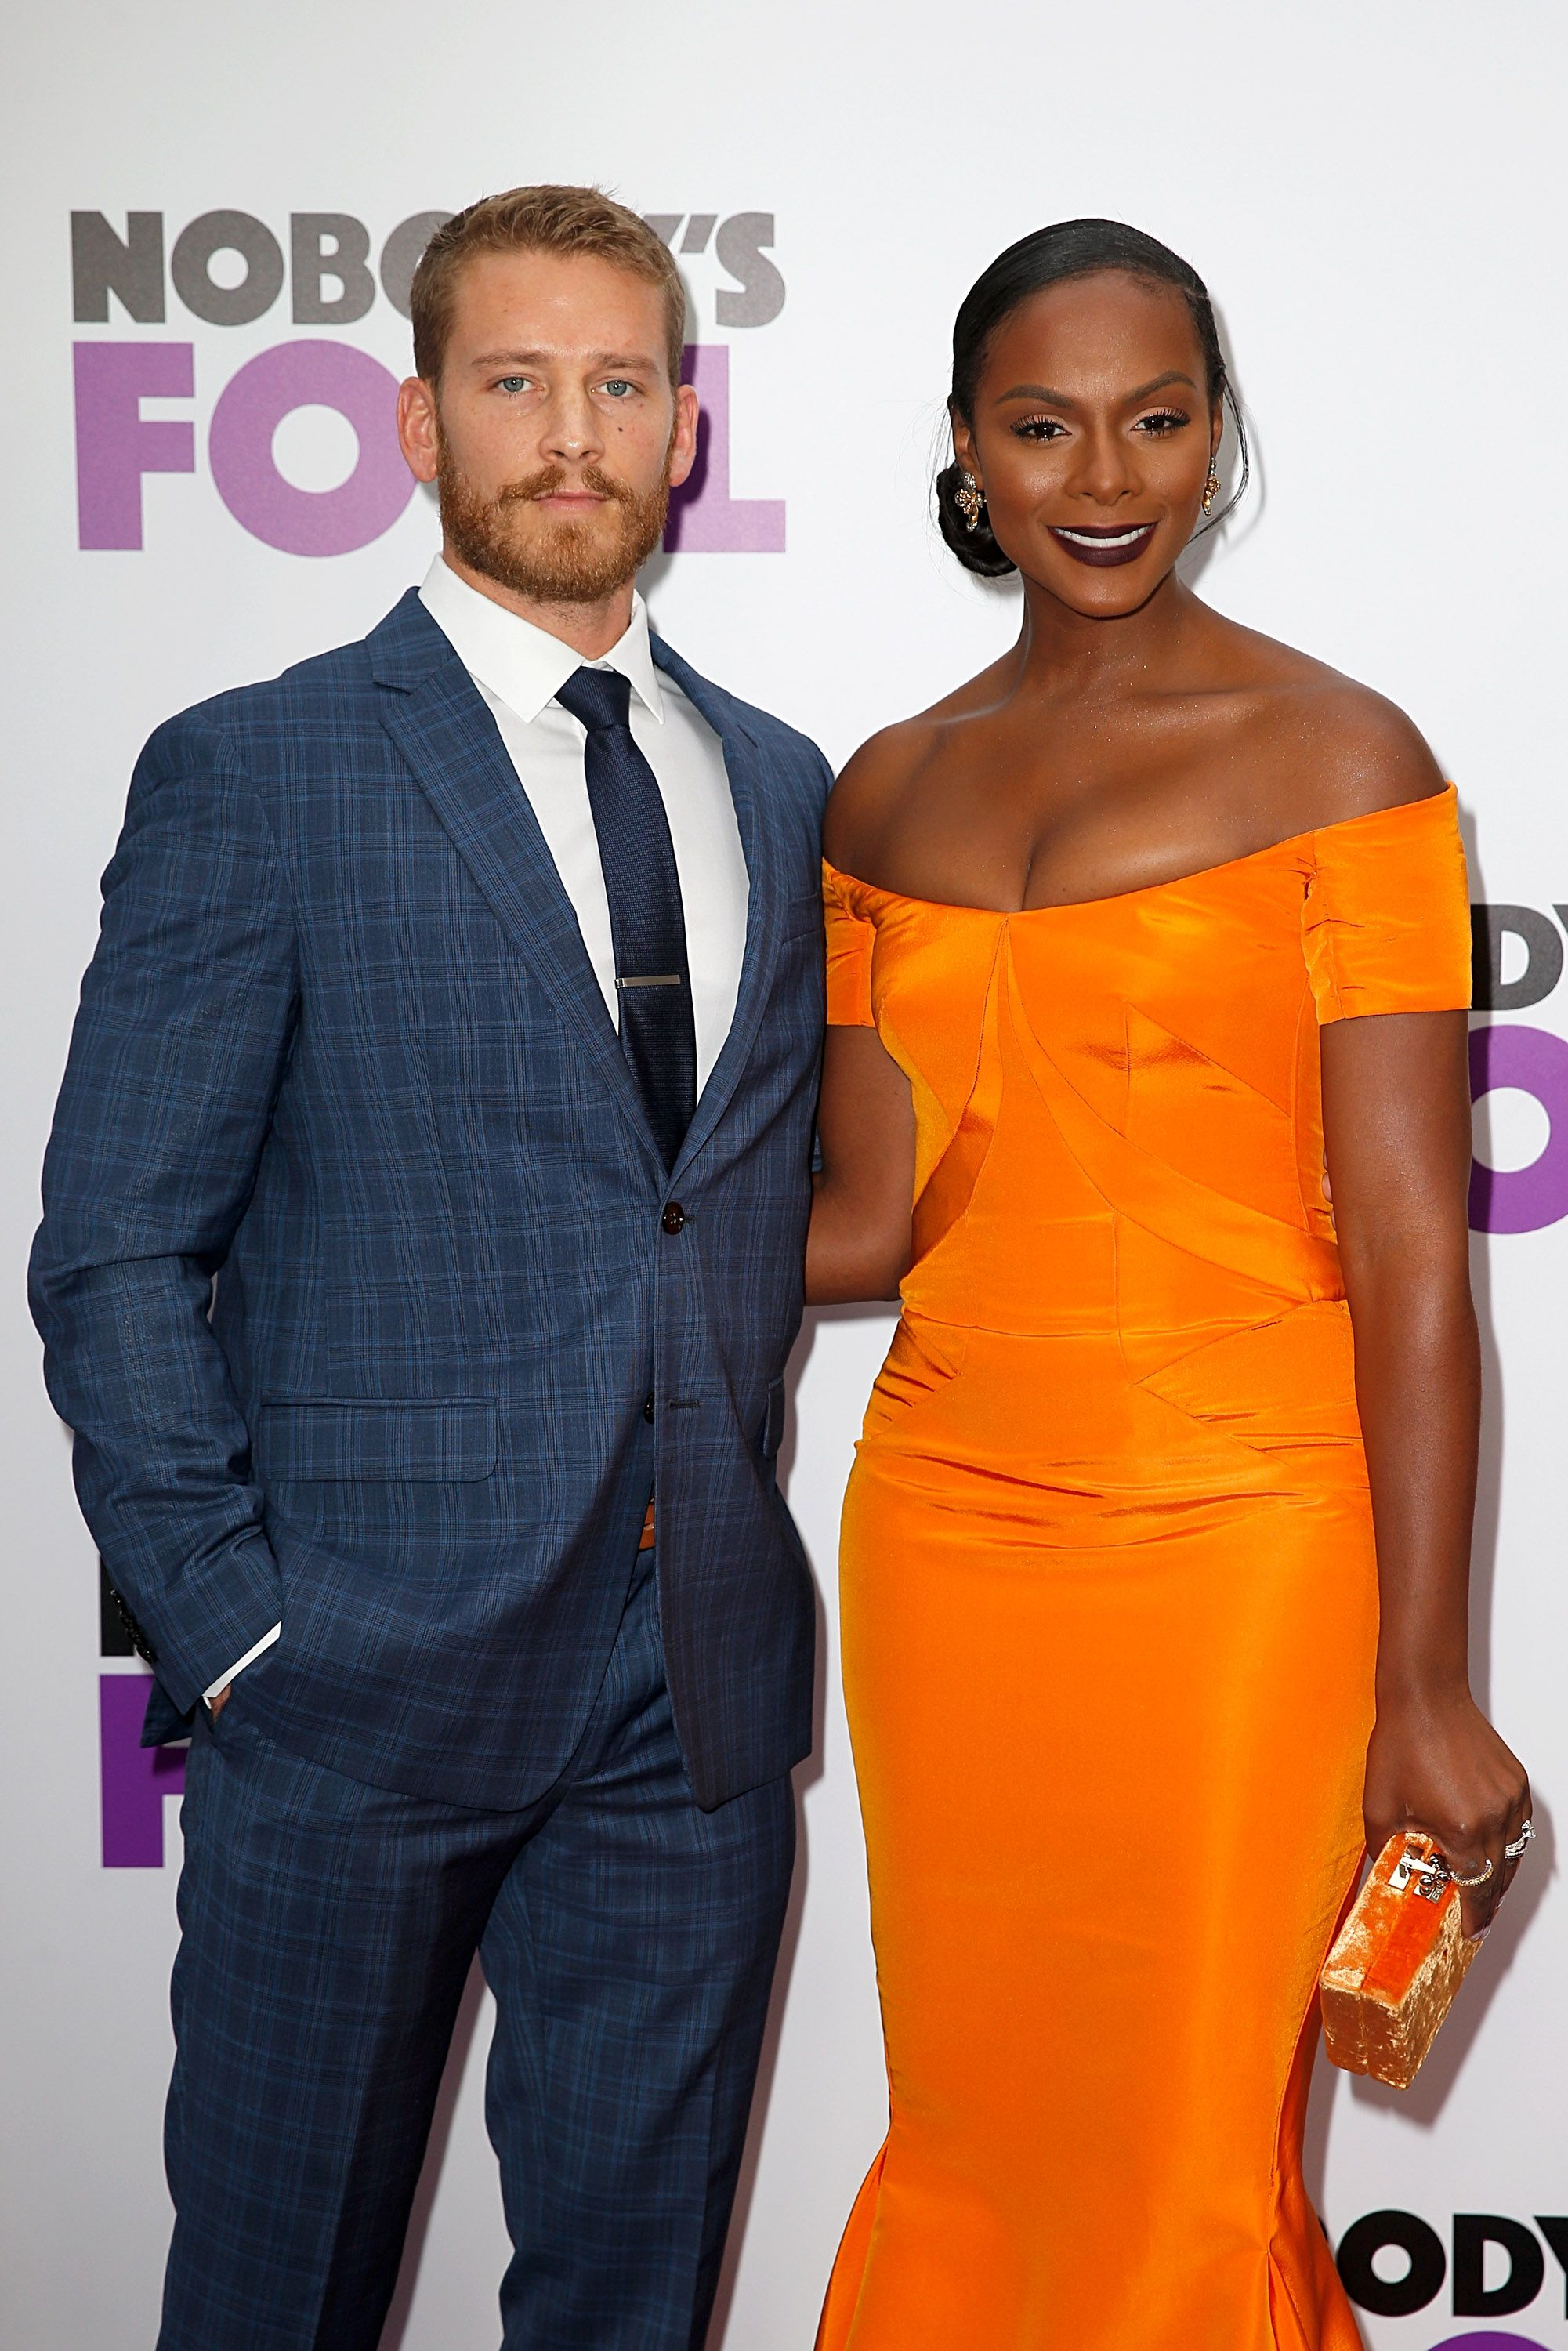 Nicholas James and Tika Sumpter at the 'Nobody's Fool' New York premiere at AMC Lincoln Square Theater on October 28, 2018. | Source: Getty Images